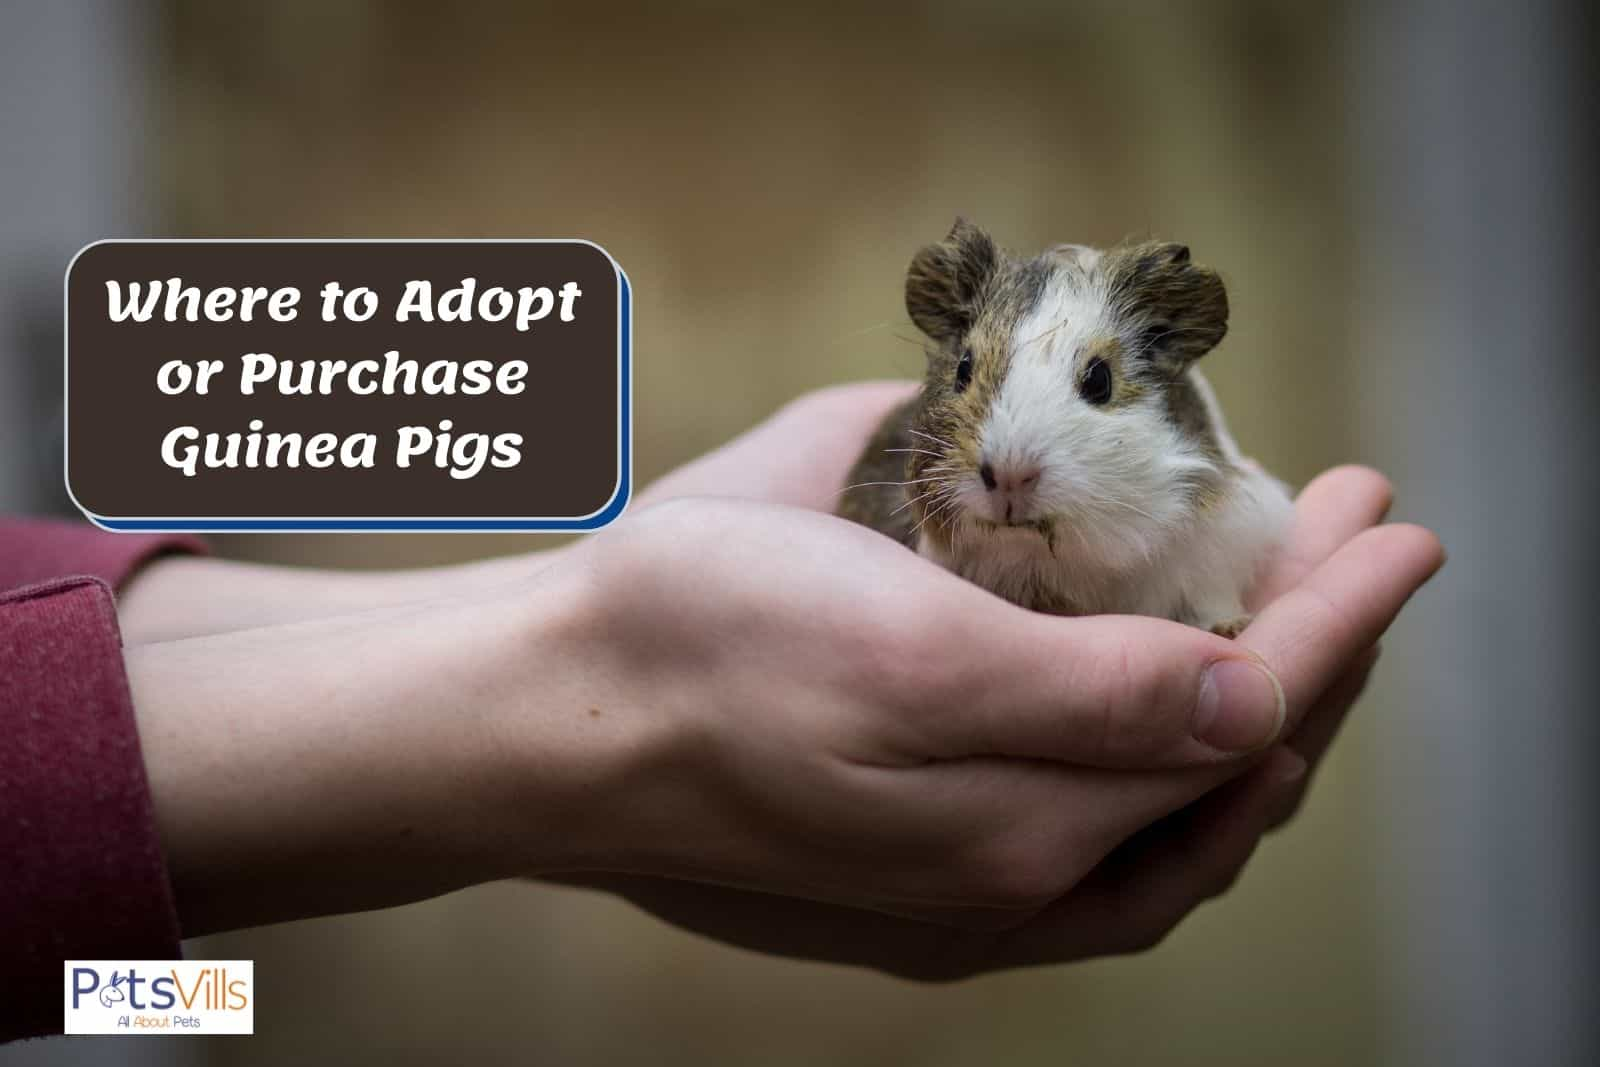 a lady holding a tiny guinea pig: what are the Options on Where to Adopt or Purchase Your Guinea Pig?